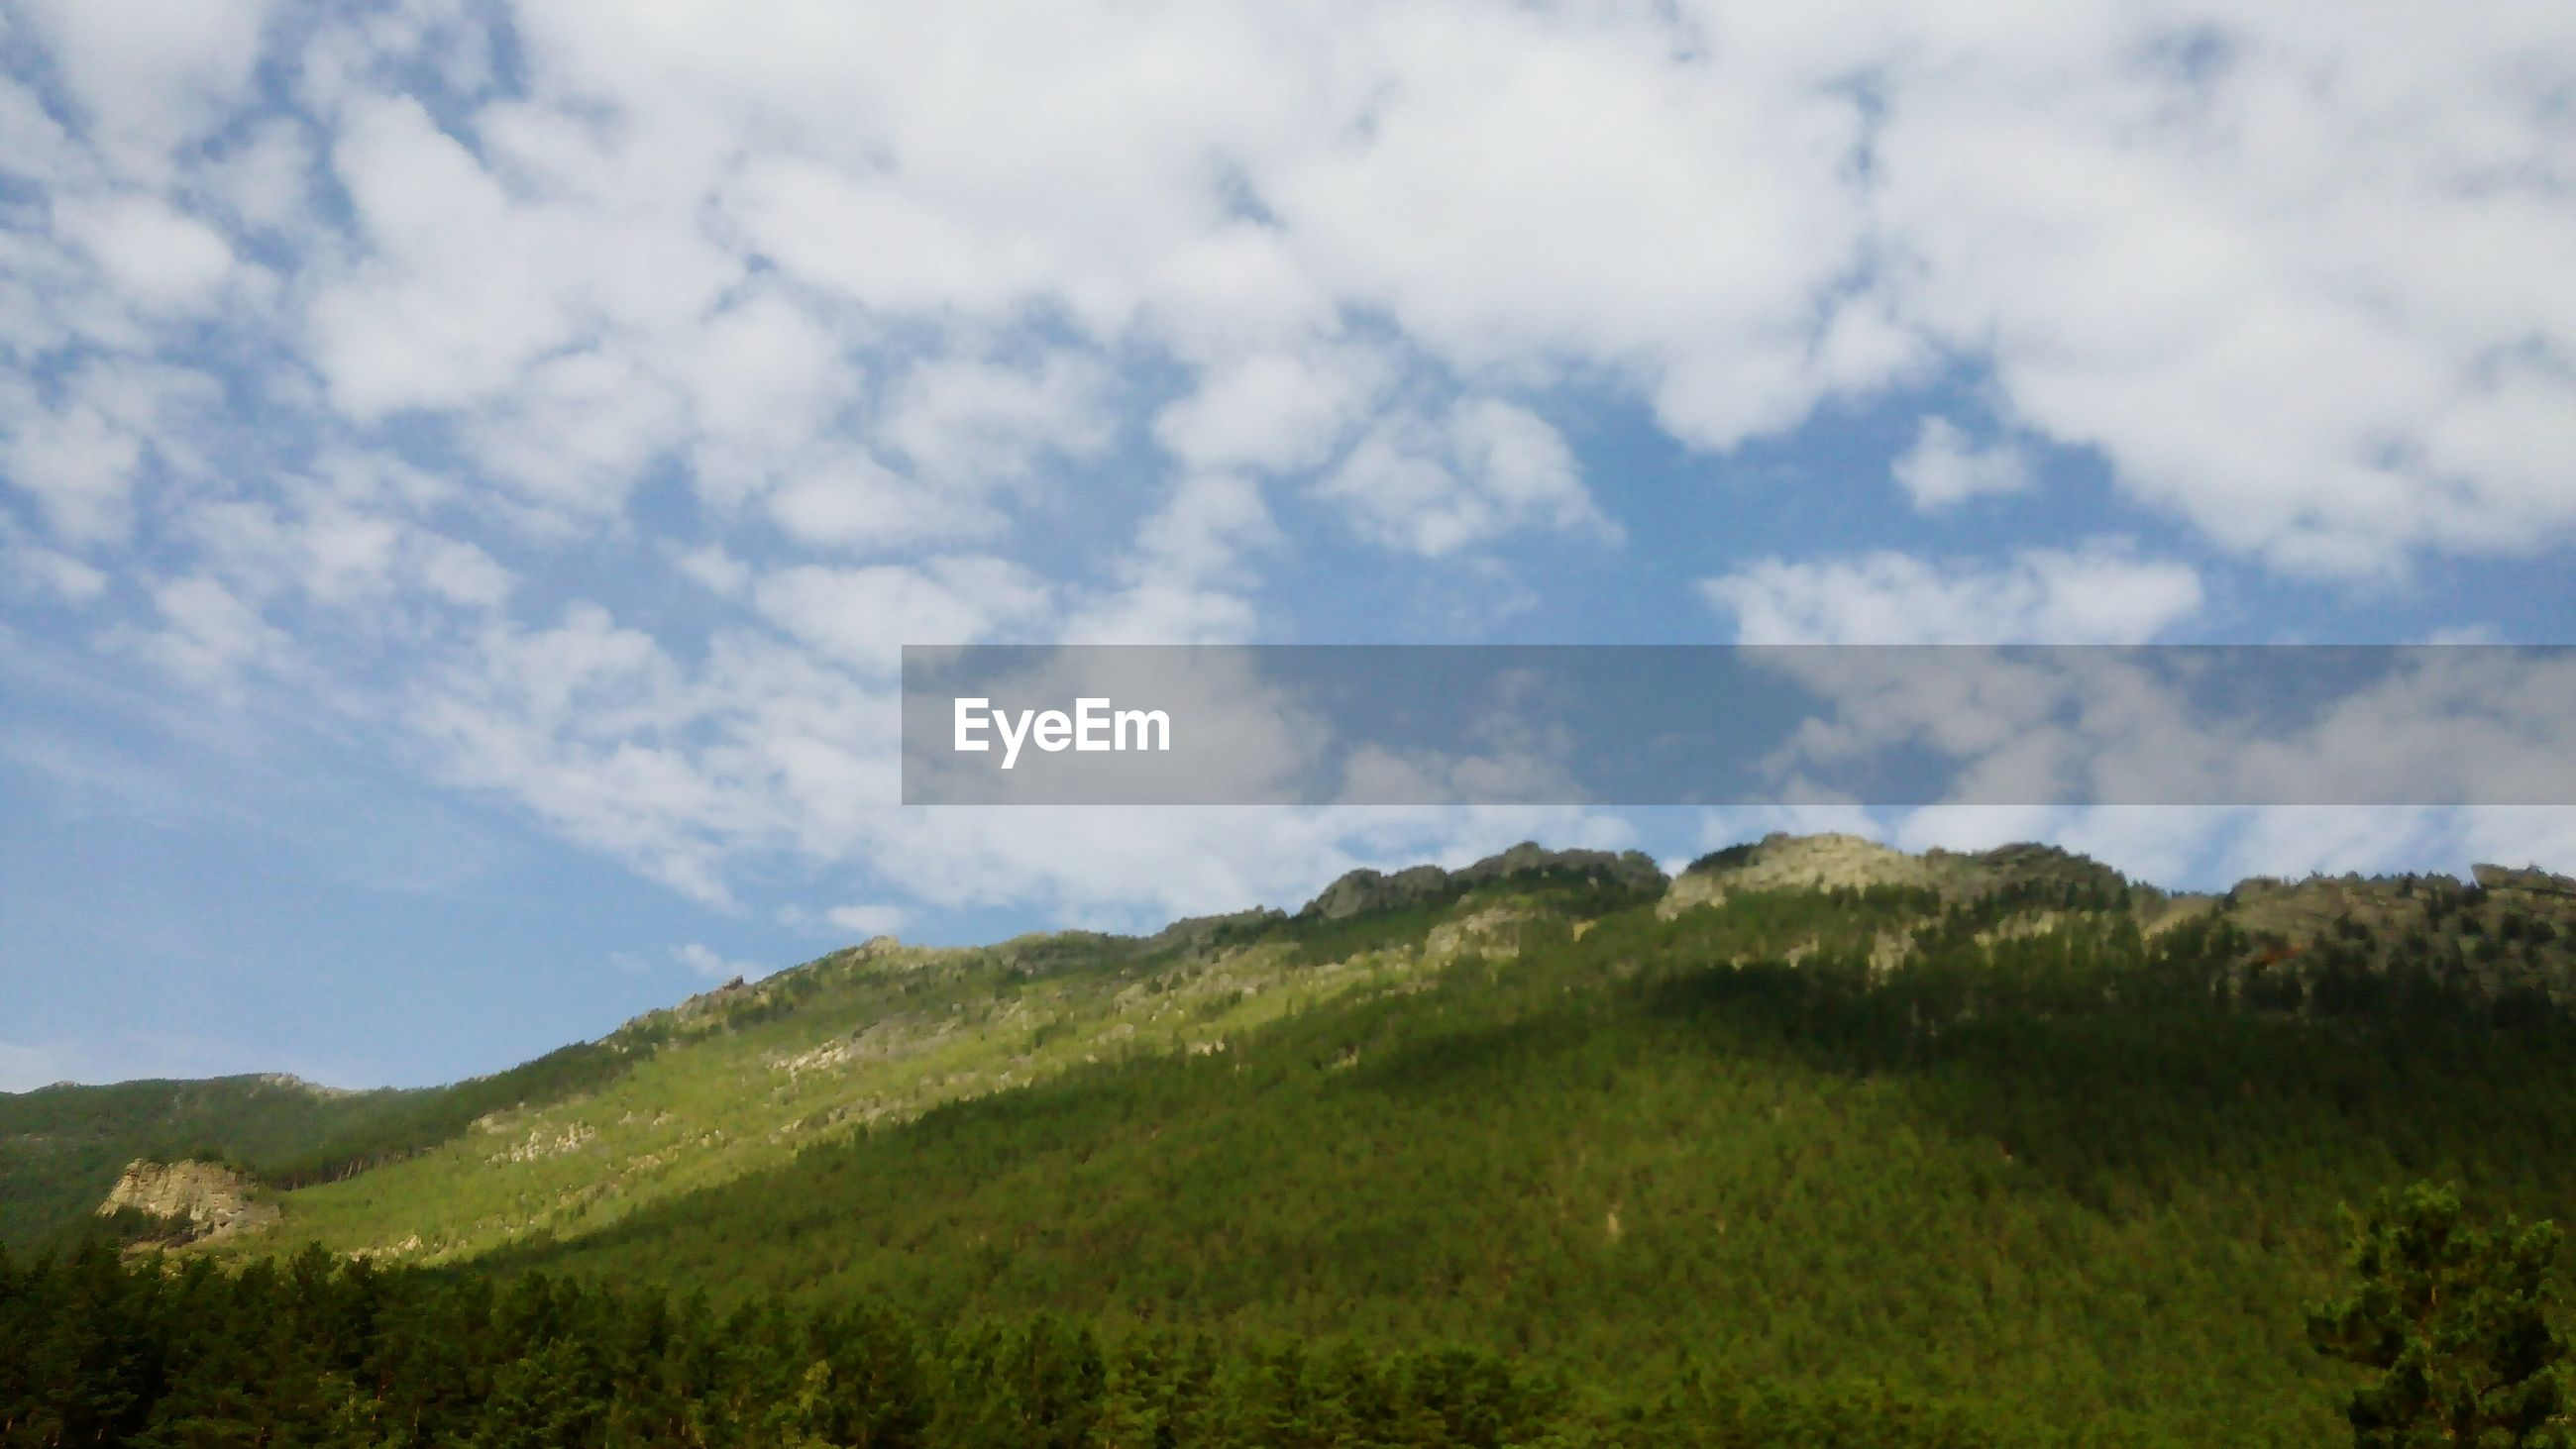 sky, mountain, tranquil scene, tranquility, scenics, landscape, beauty in nature, cloud - sky, grass, nature, green color, cloud, non-urban scene, mountain range, cloudy, tree, growth, hill, idyllic, remote